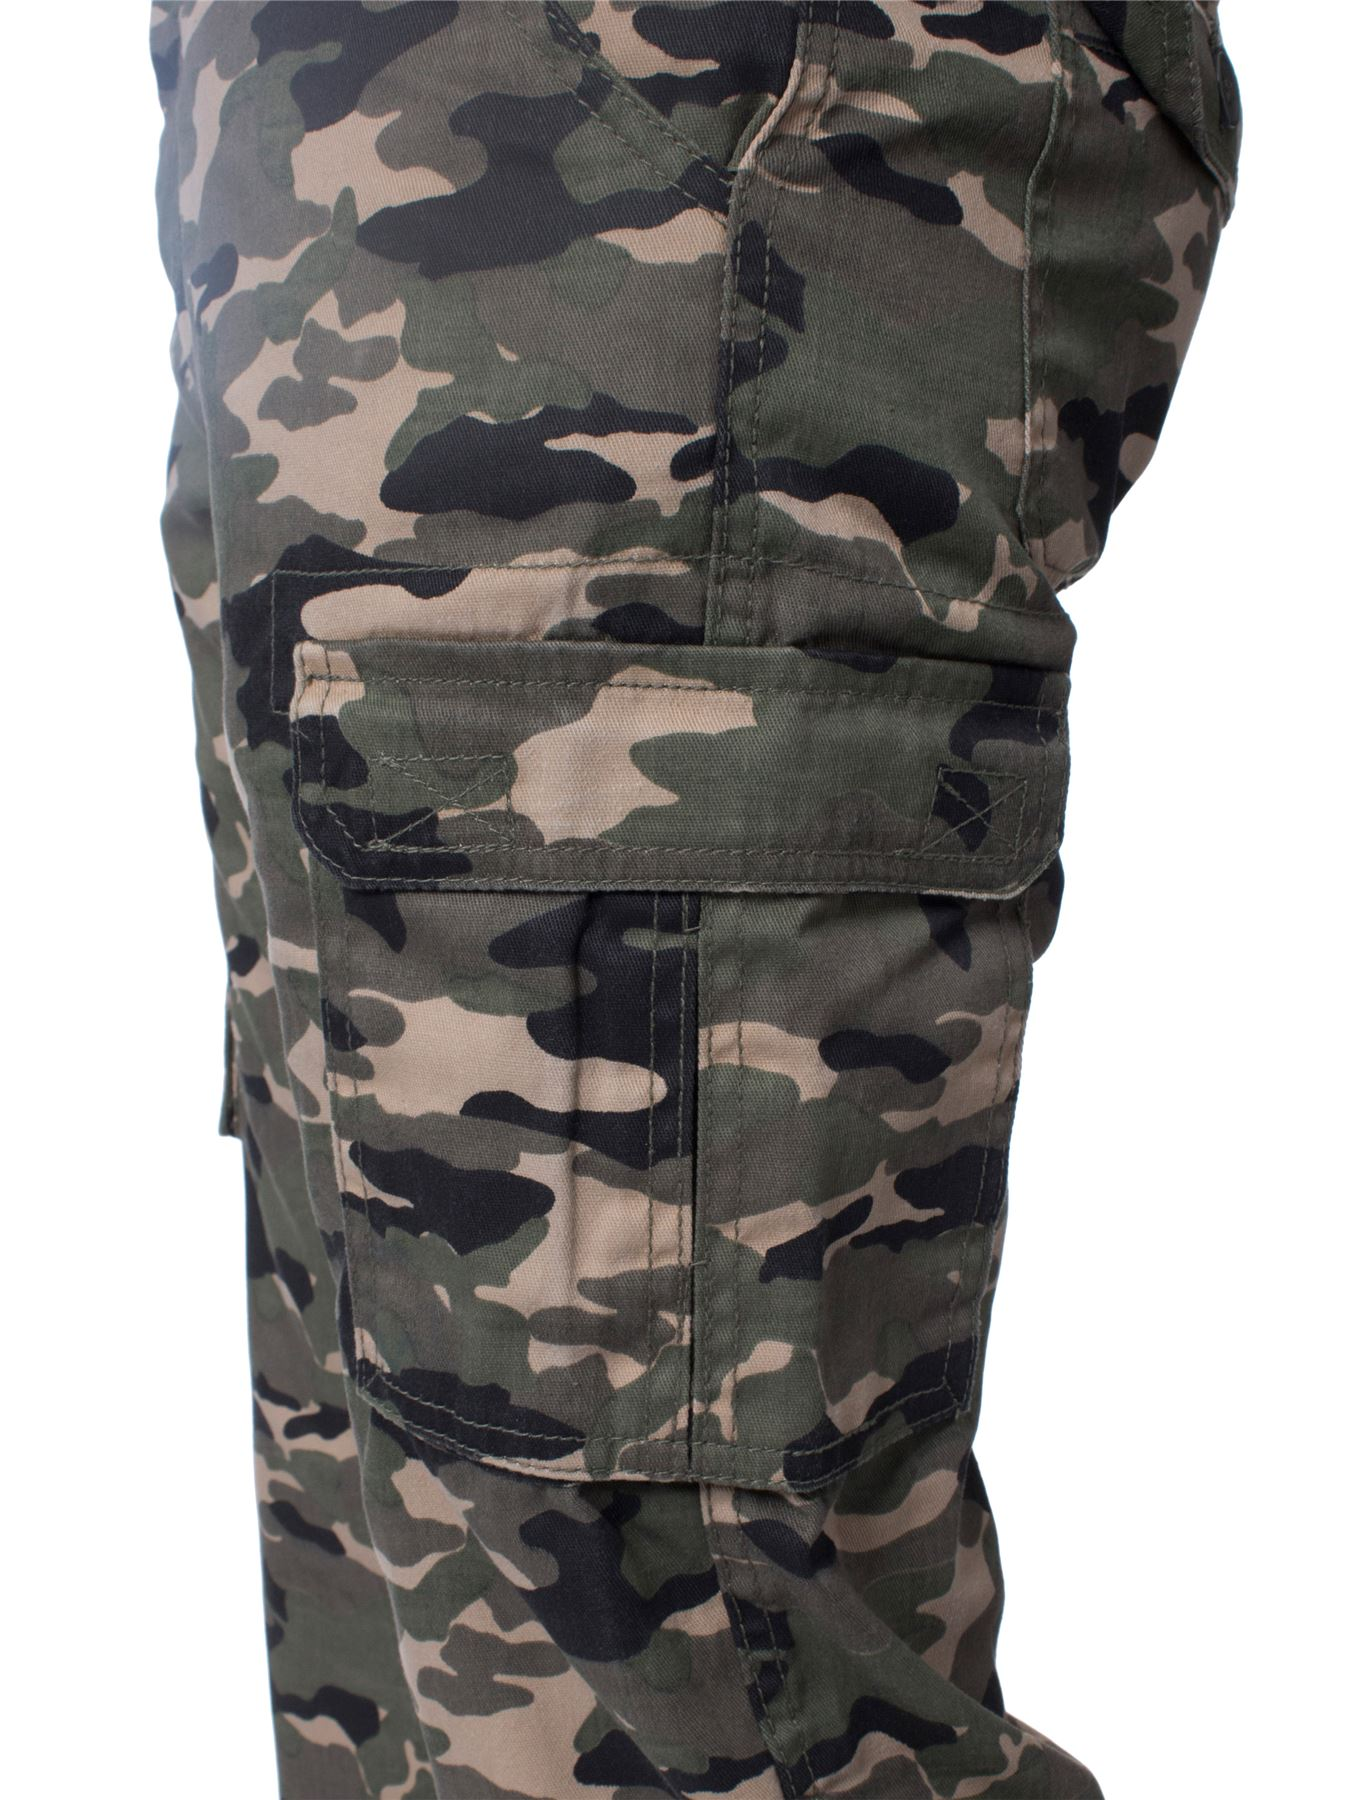 Kruze-Mens-Military-Combat-Trousers-Camouflage-Cargo-Camo-Army-Casual-Work-Pants miniatura 20